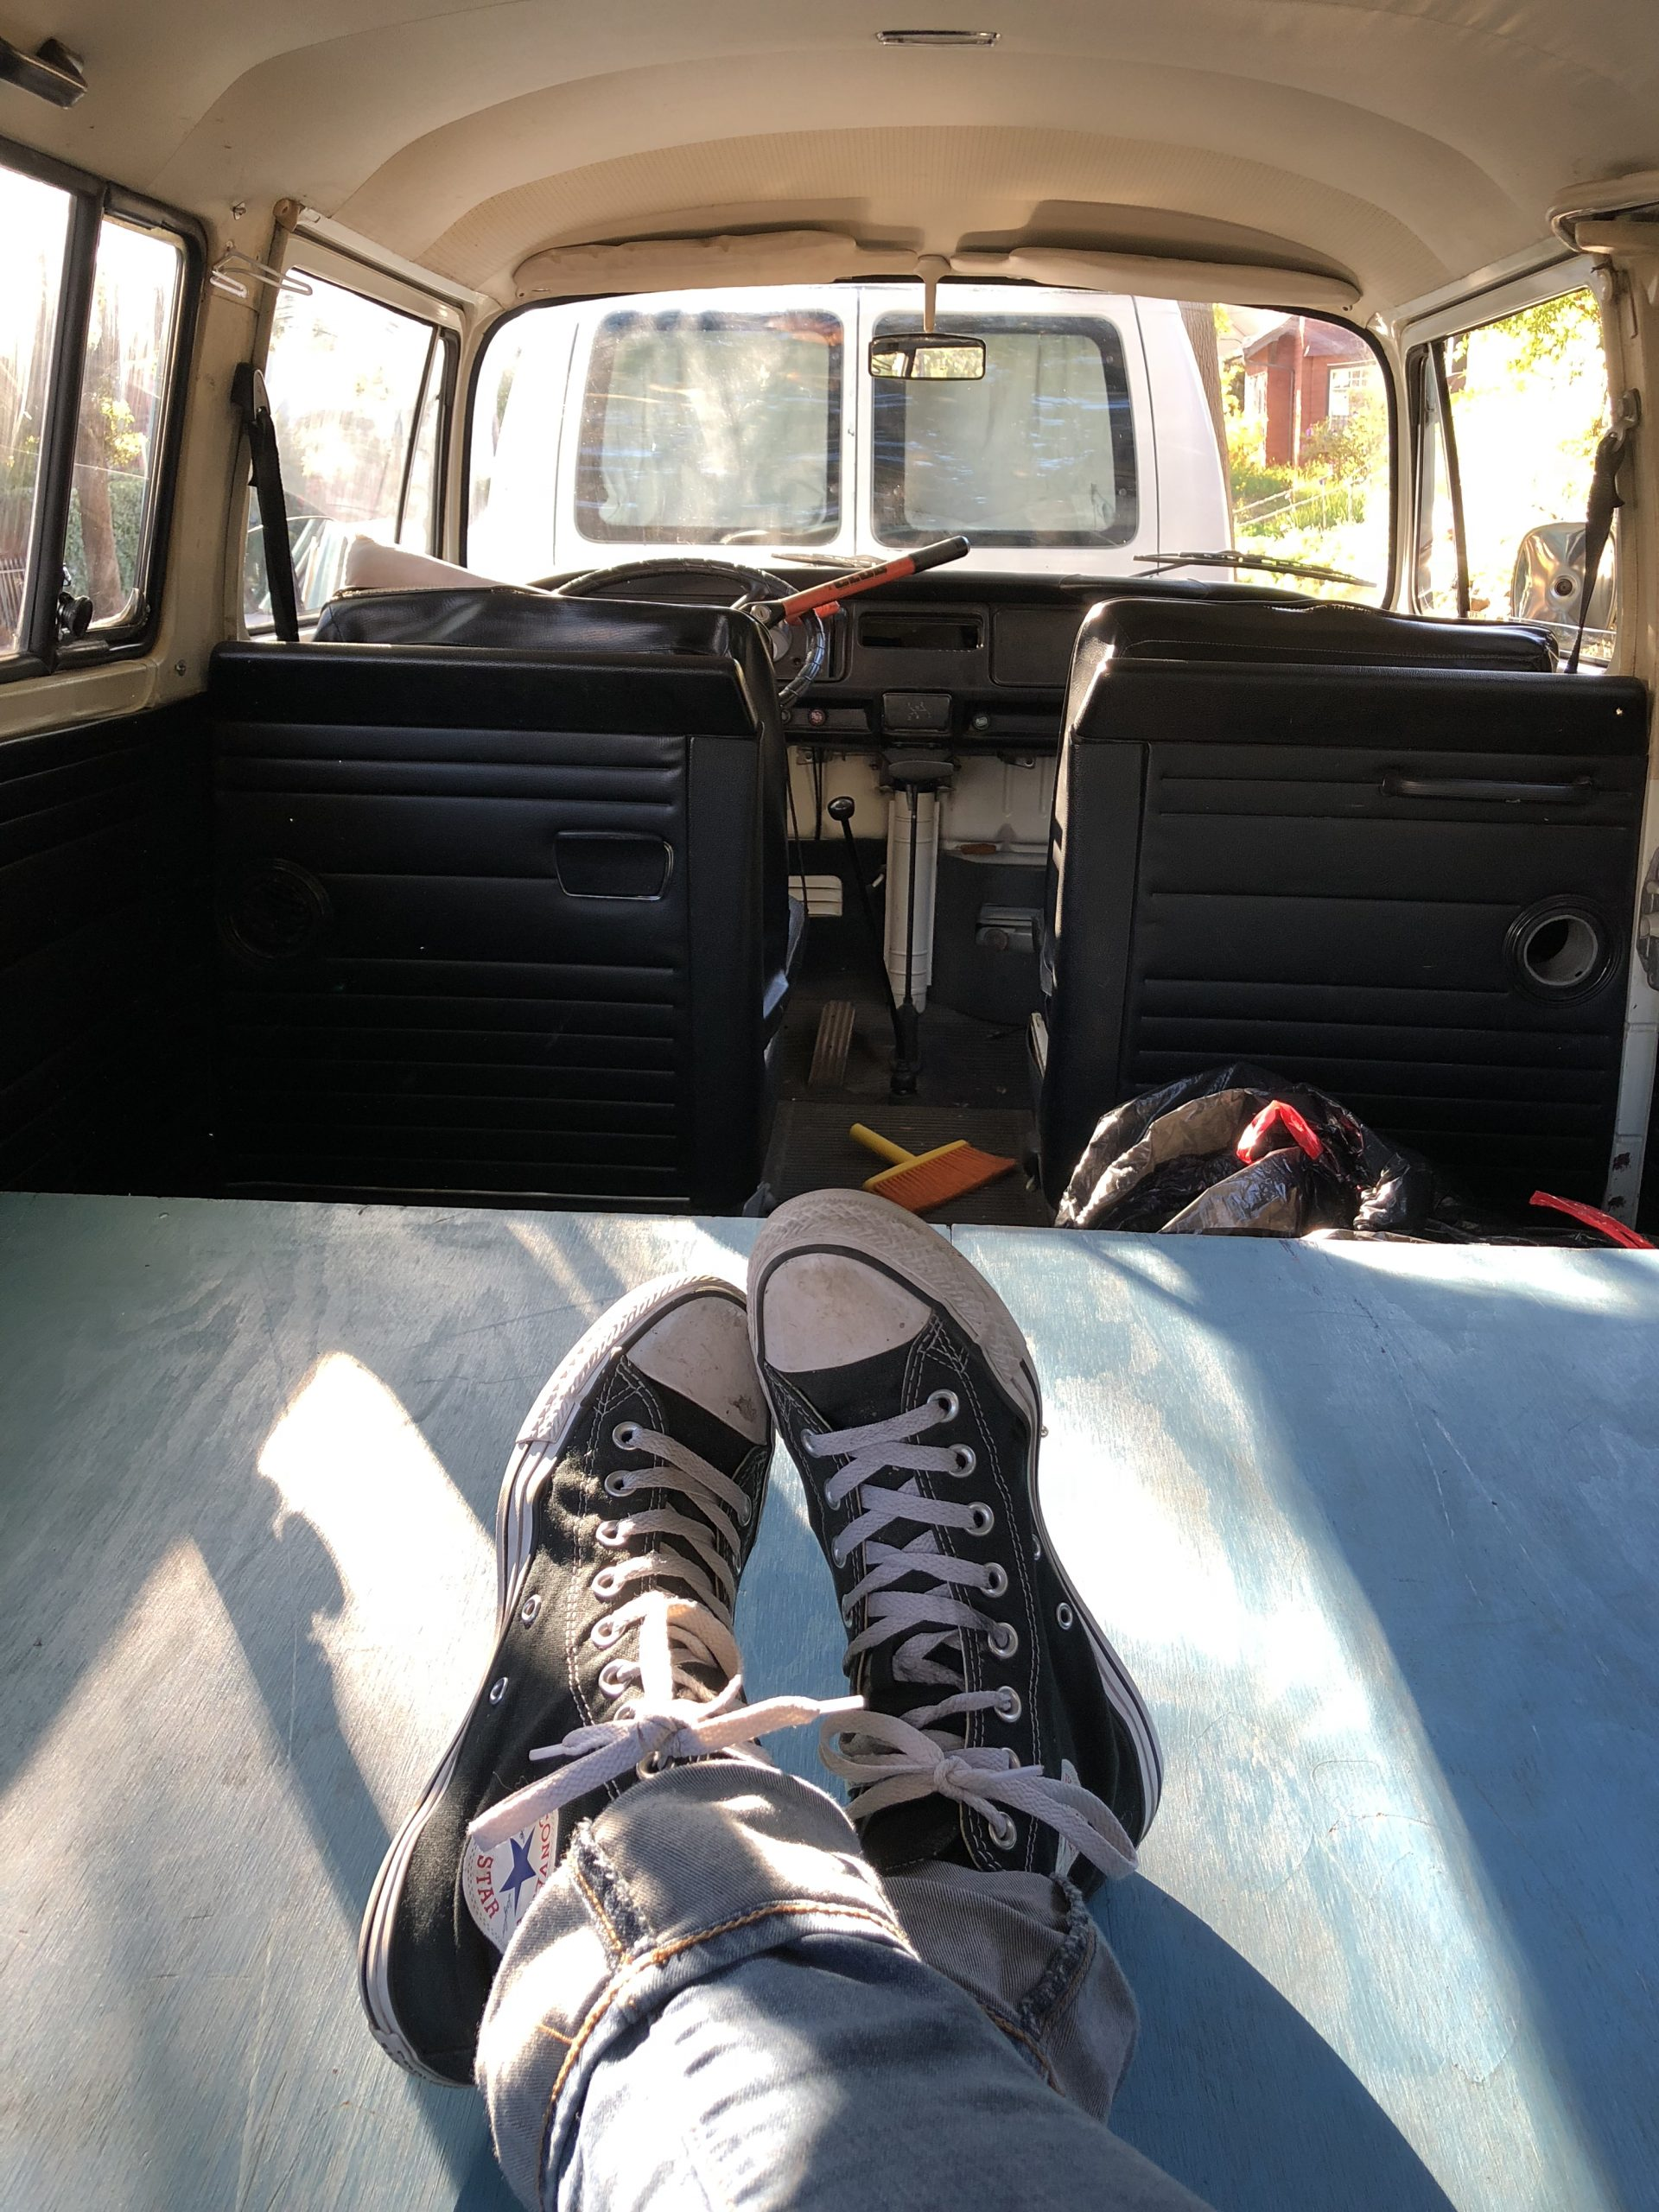 Vanlife Advice from Someone Who Has Been Living This Way For A Very Long Time